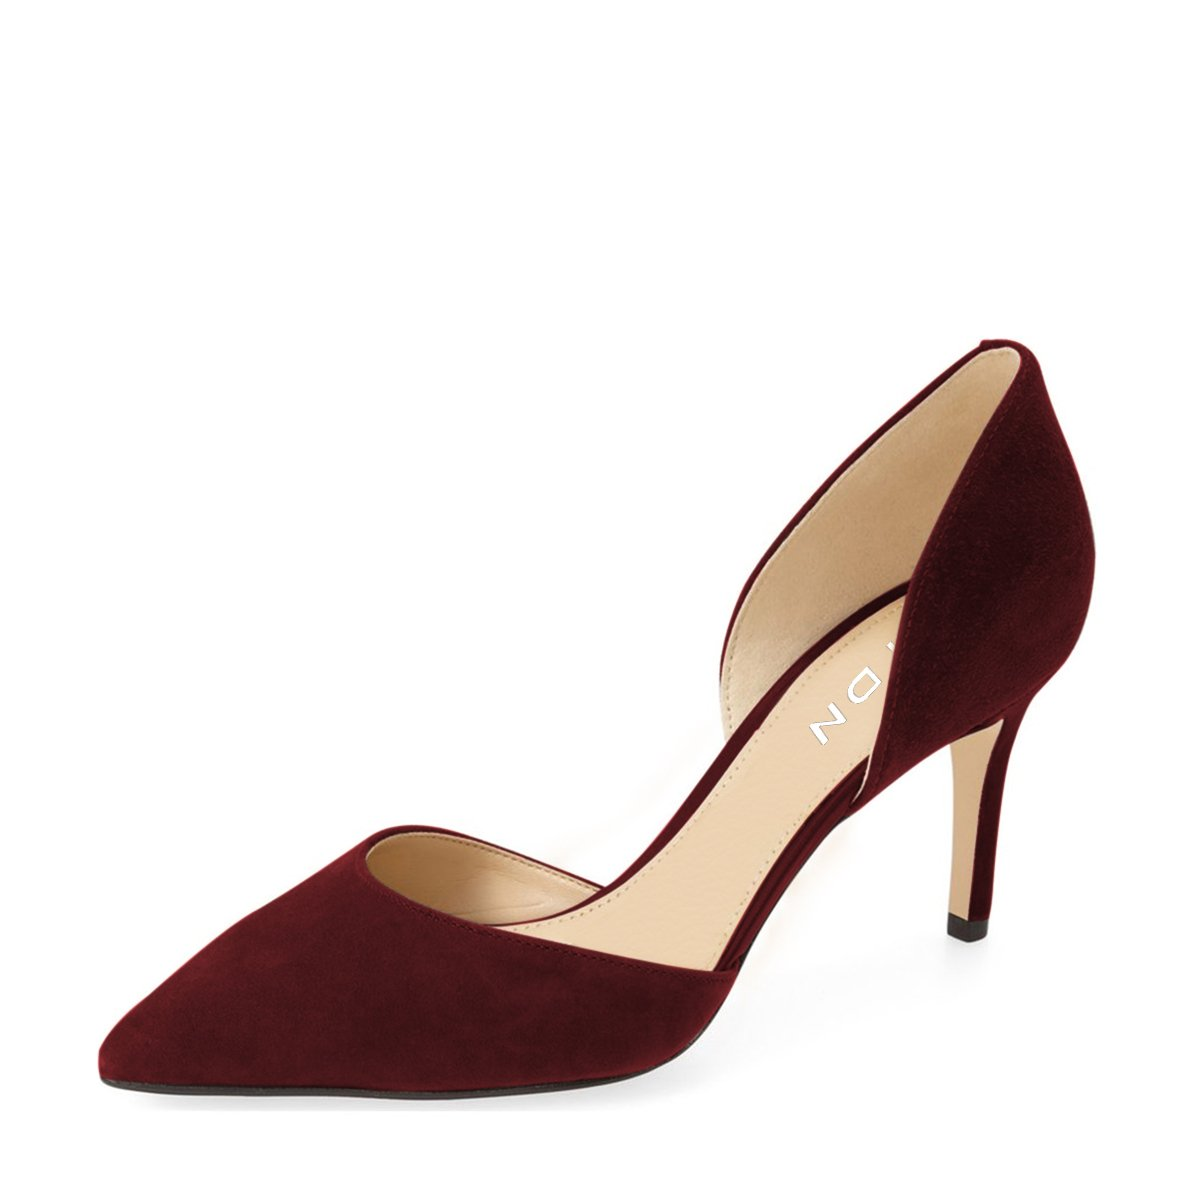 YDN Women Classic Low Heels D'Orsay Pumps Suede Pointed Toe Slip On Dressy Stilettos Shoes B01N7HQQES 15 B(M) US|Wine Red